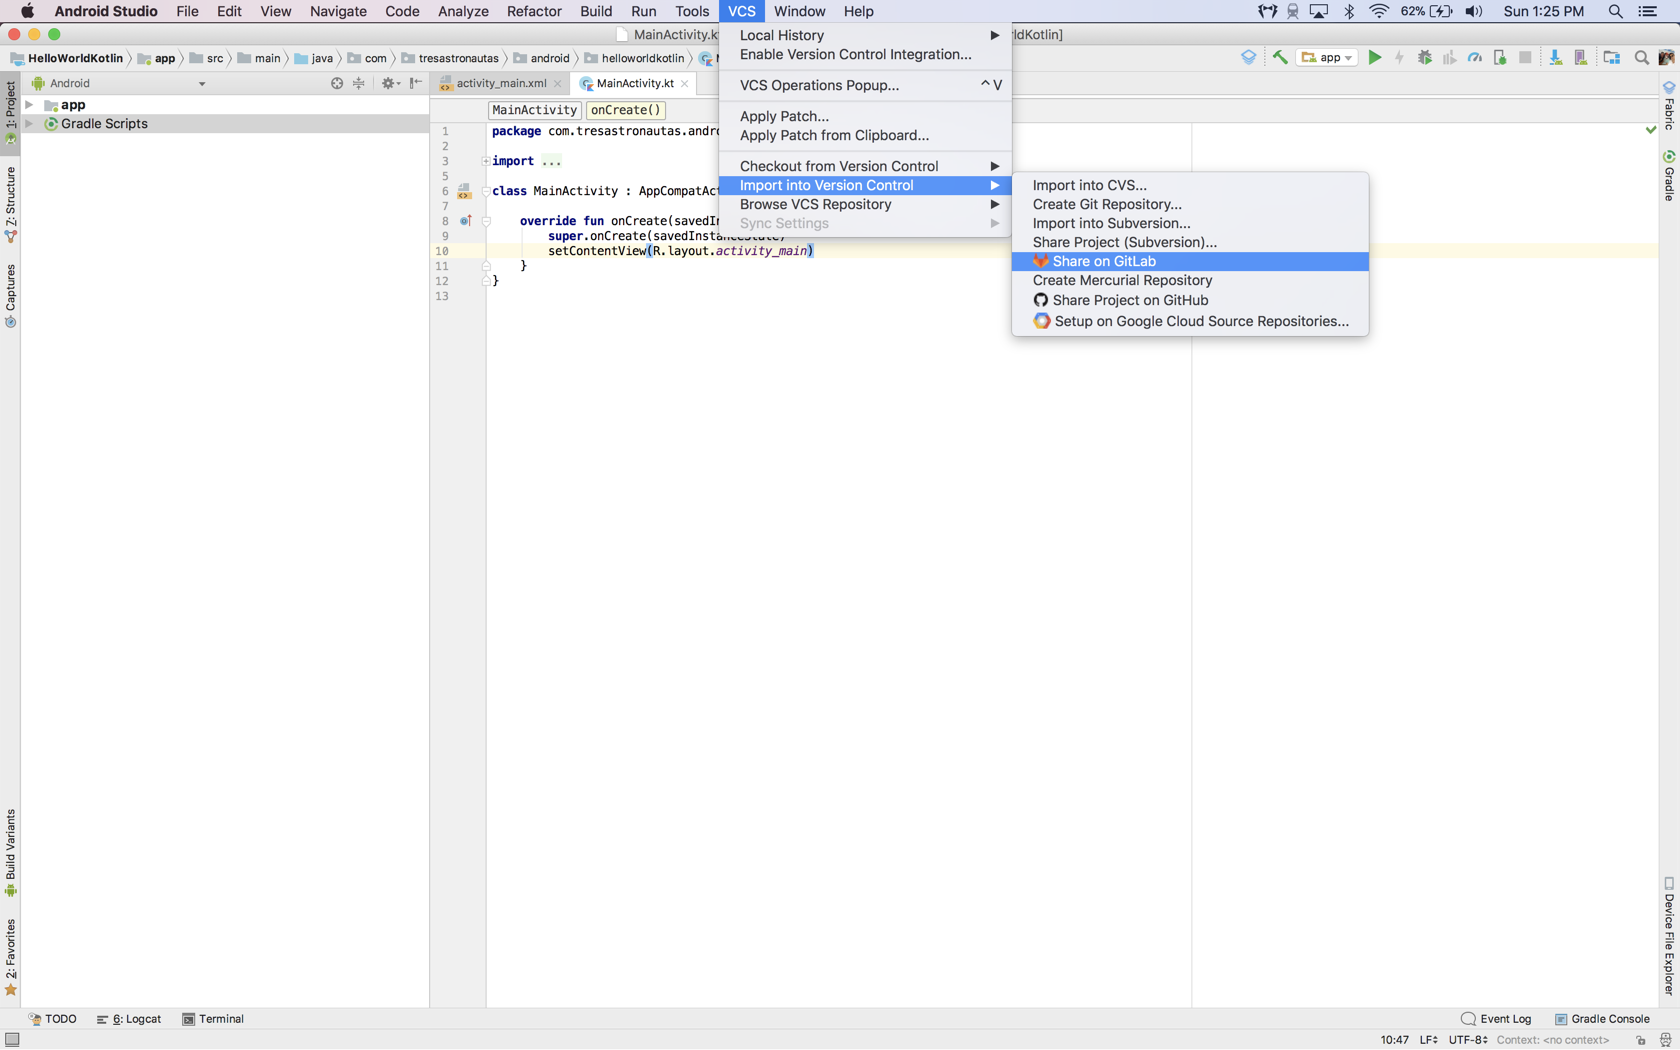 Lesson 1 - Creating and managing a project in Android Studio